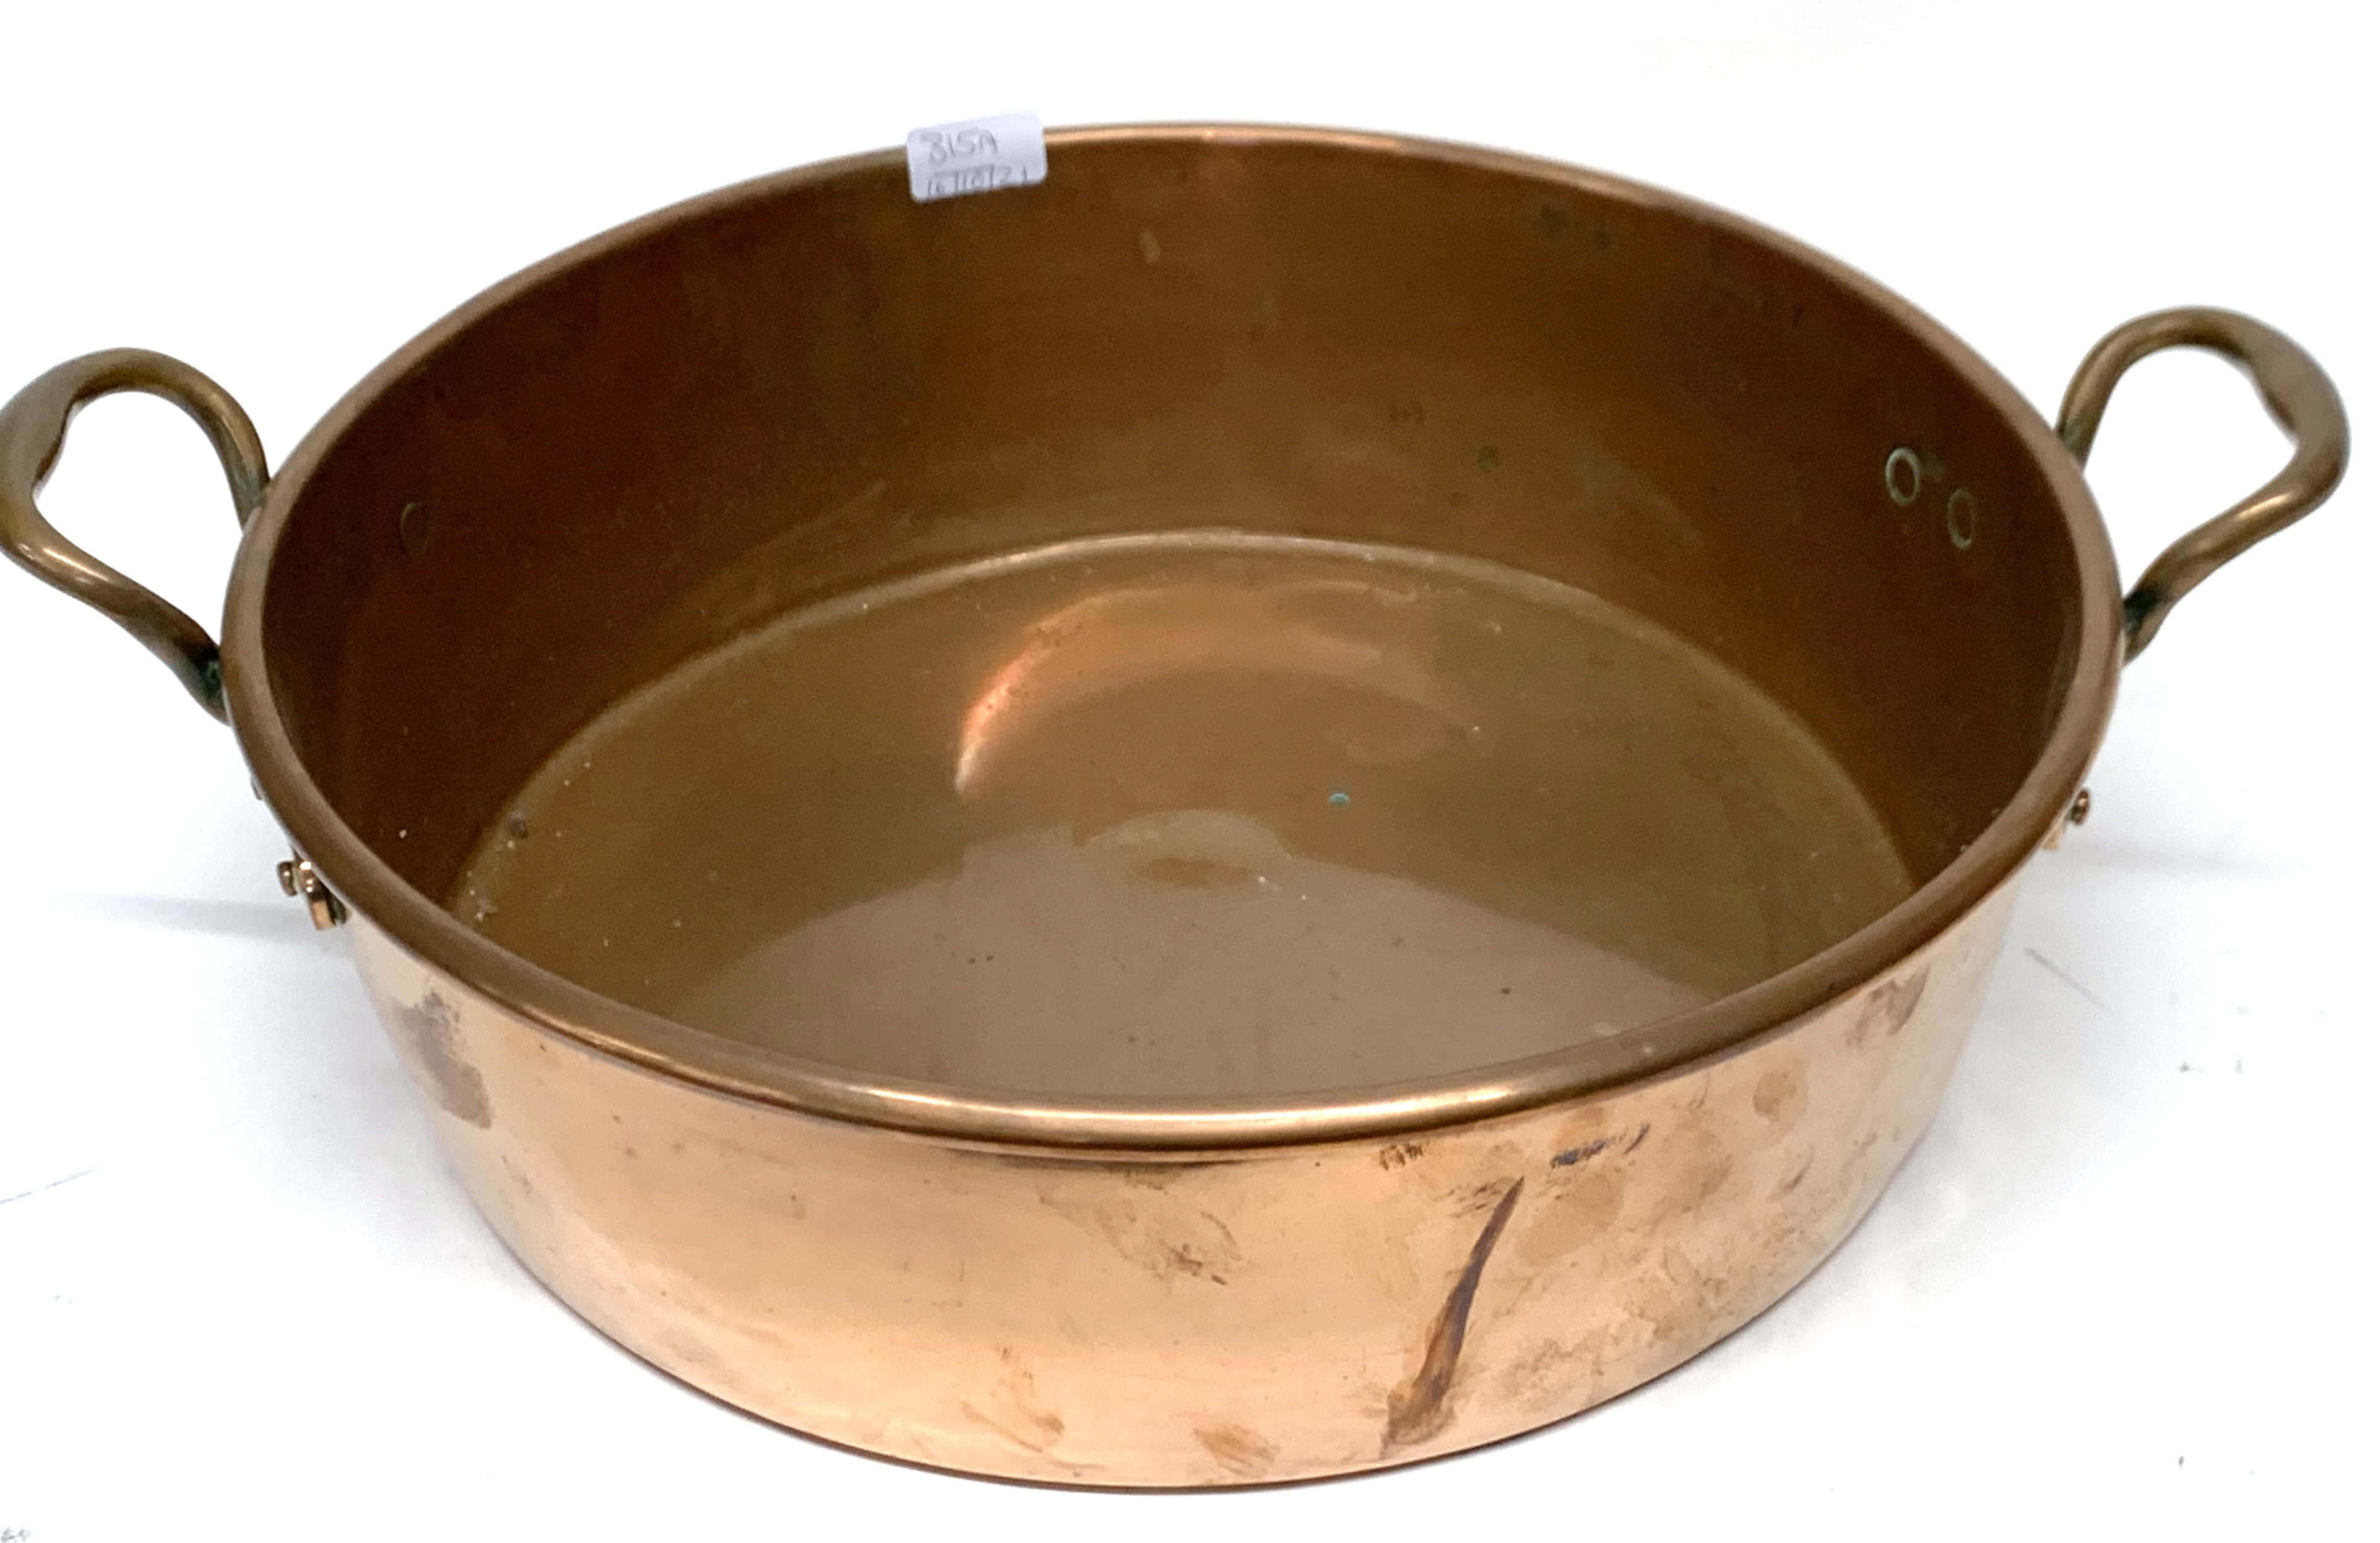 Large antique copper double handled circular pan - Image 3 of 3